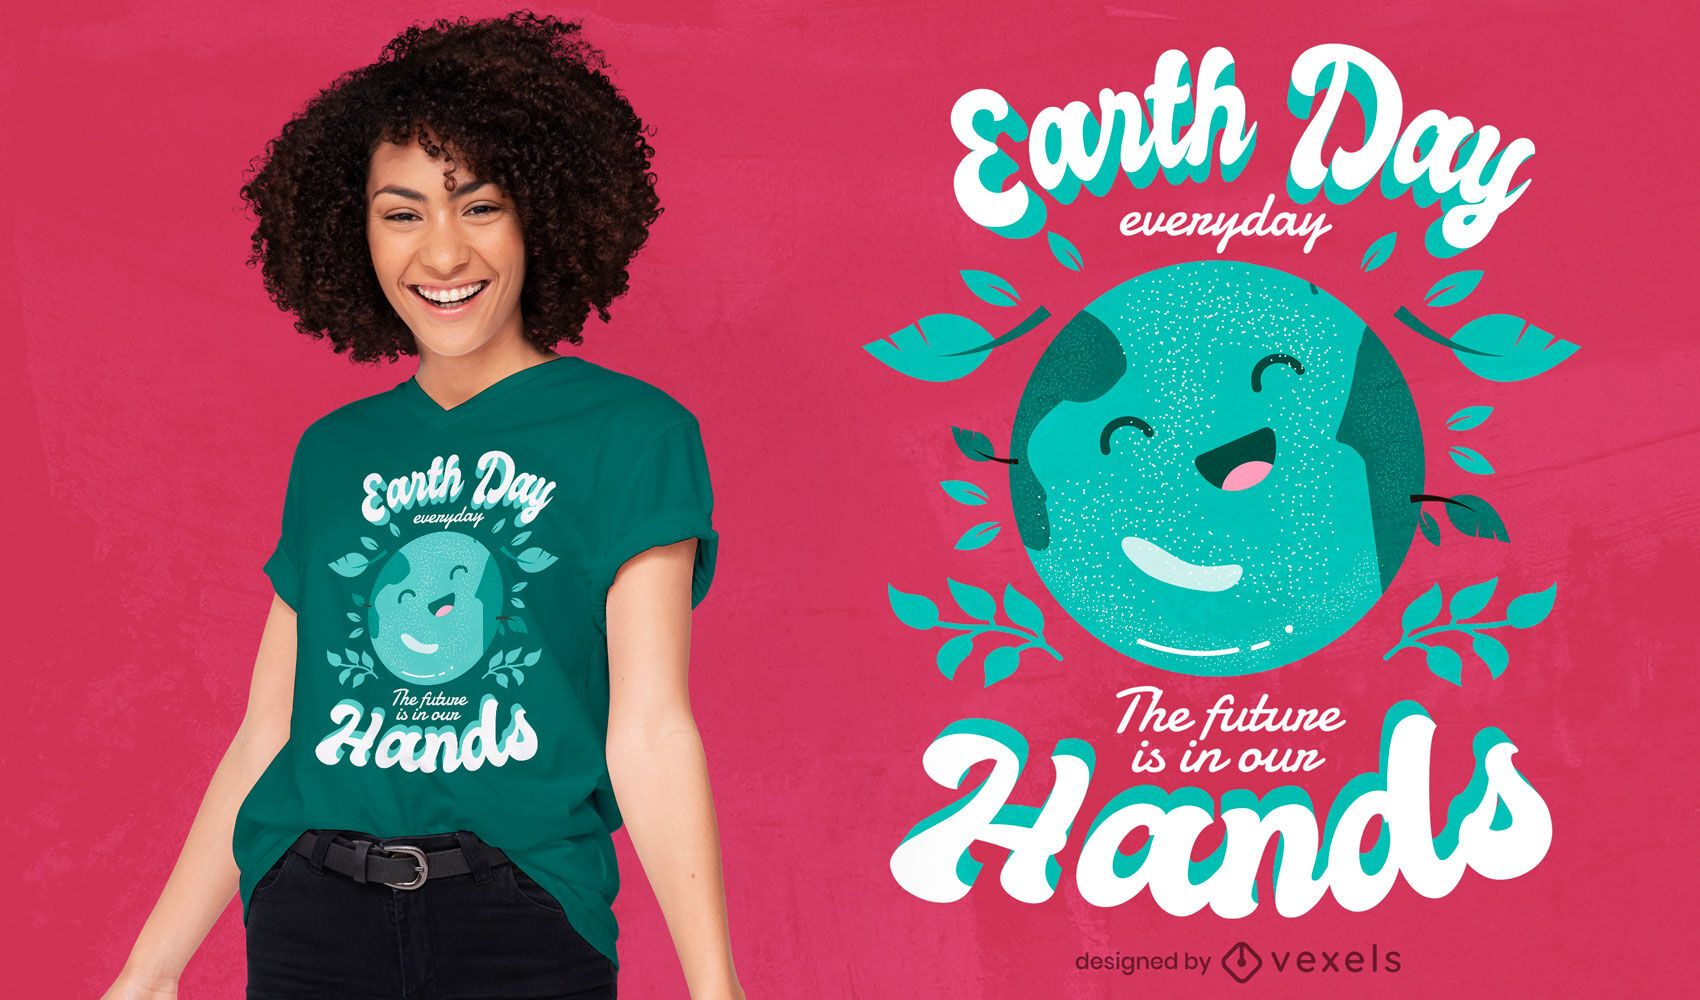 Earth day holiday quote t-shirt design